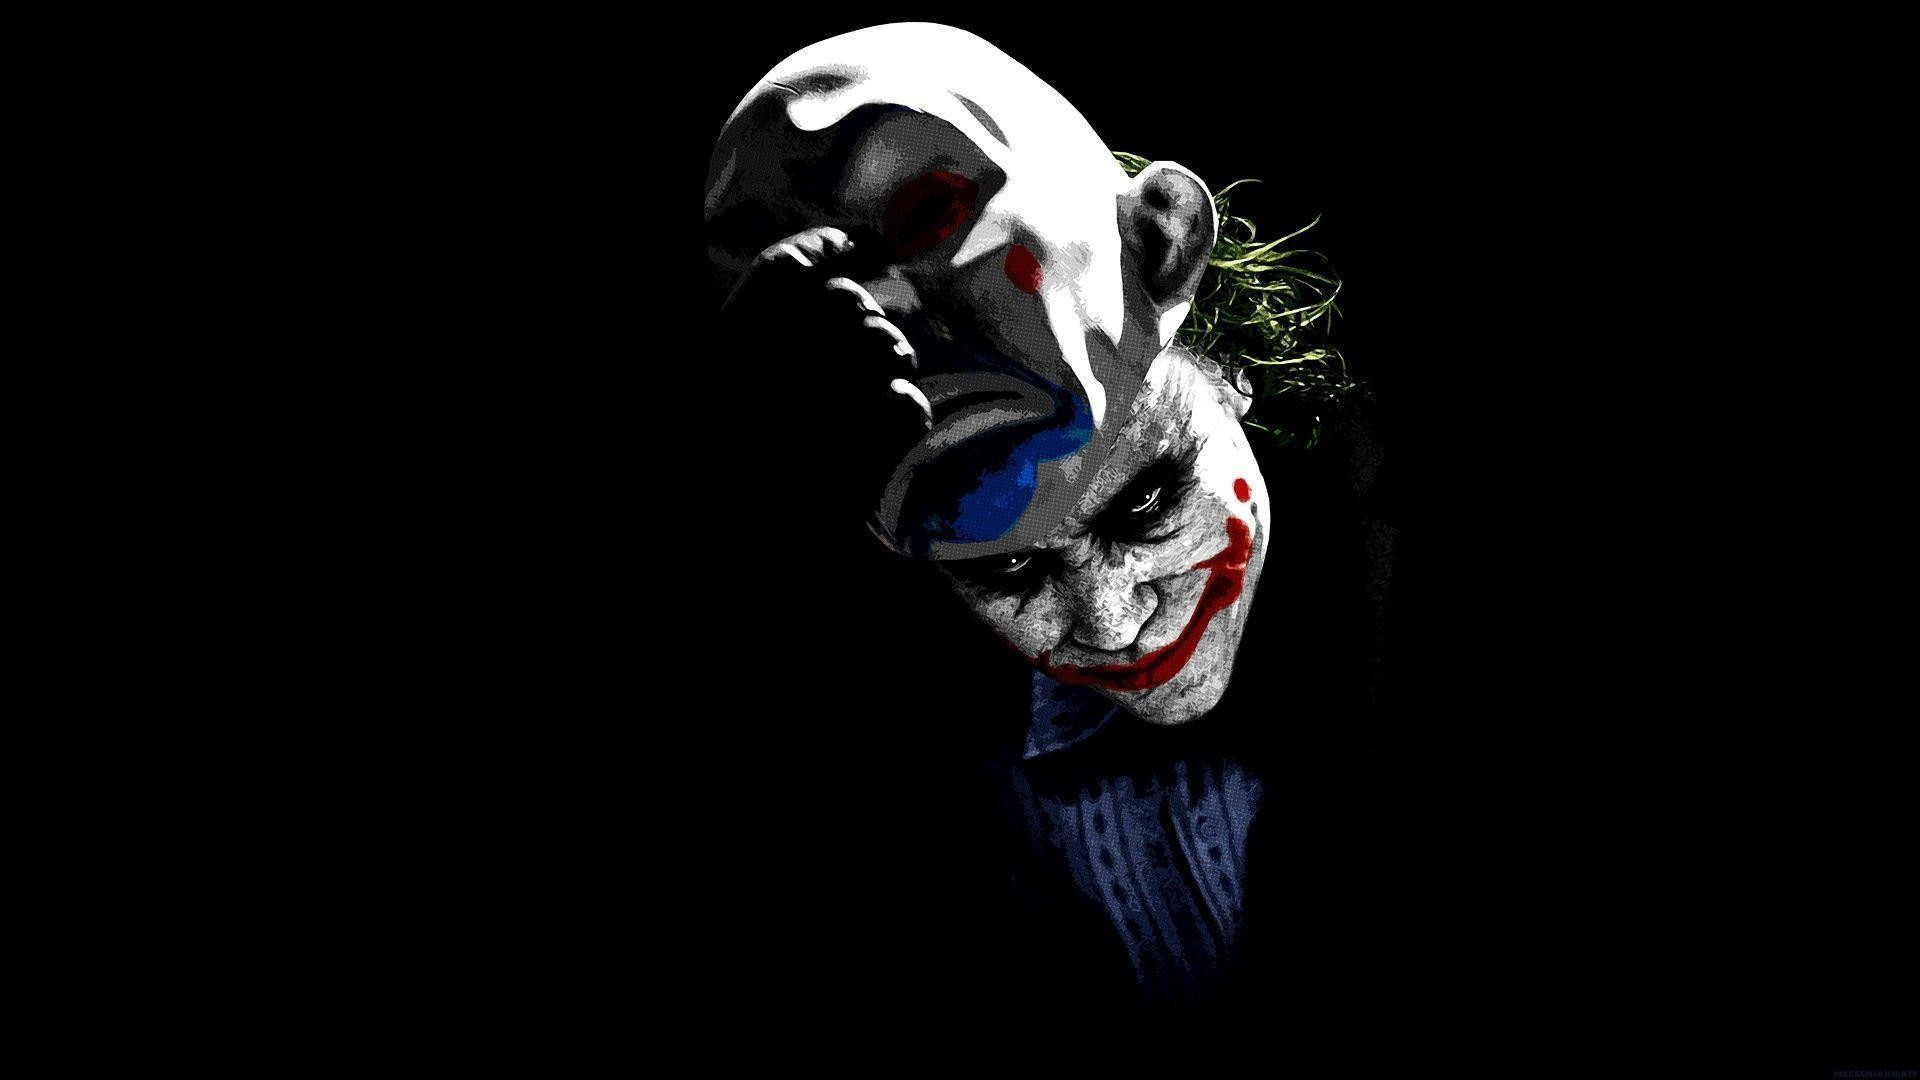 1920x1080 Wallpapers For > Evil Clown Wallpaper Hd